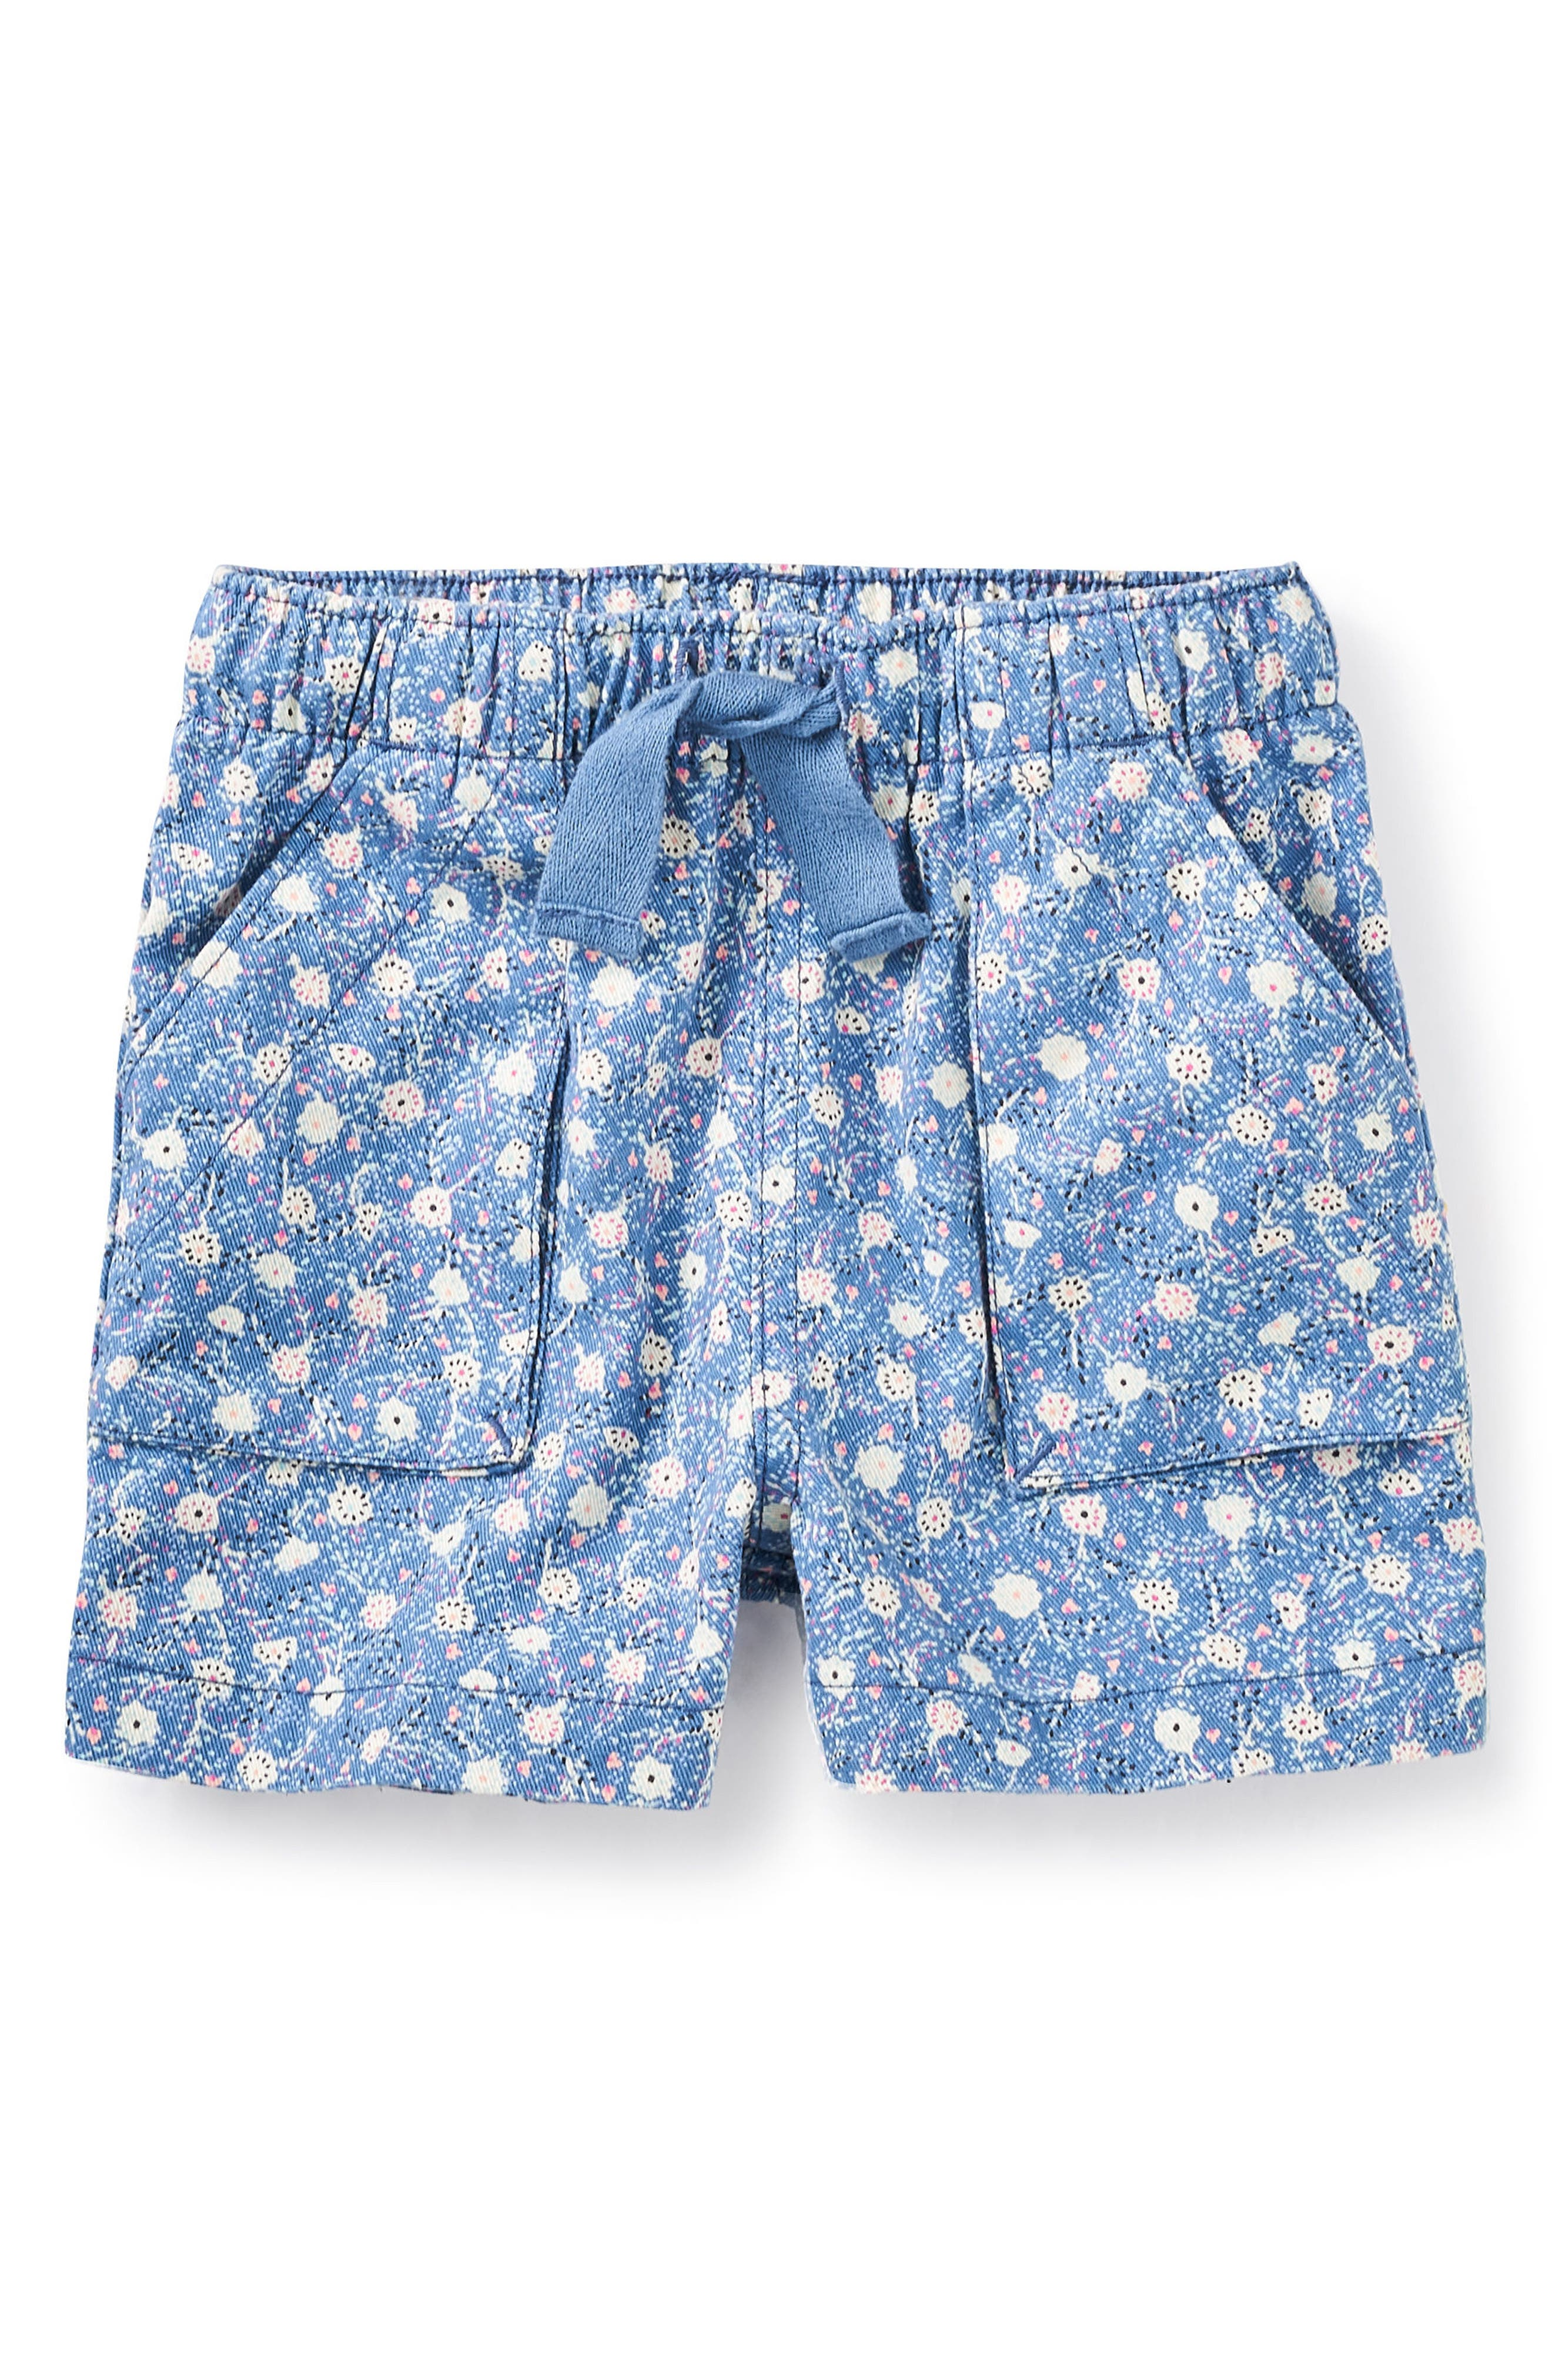 TEA COLLECTION Sigrid Shorts